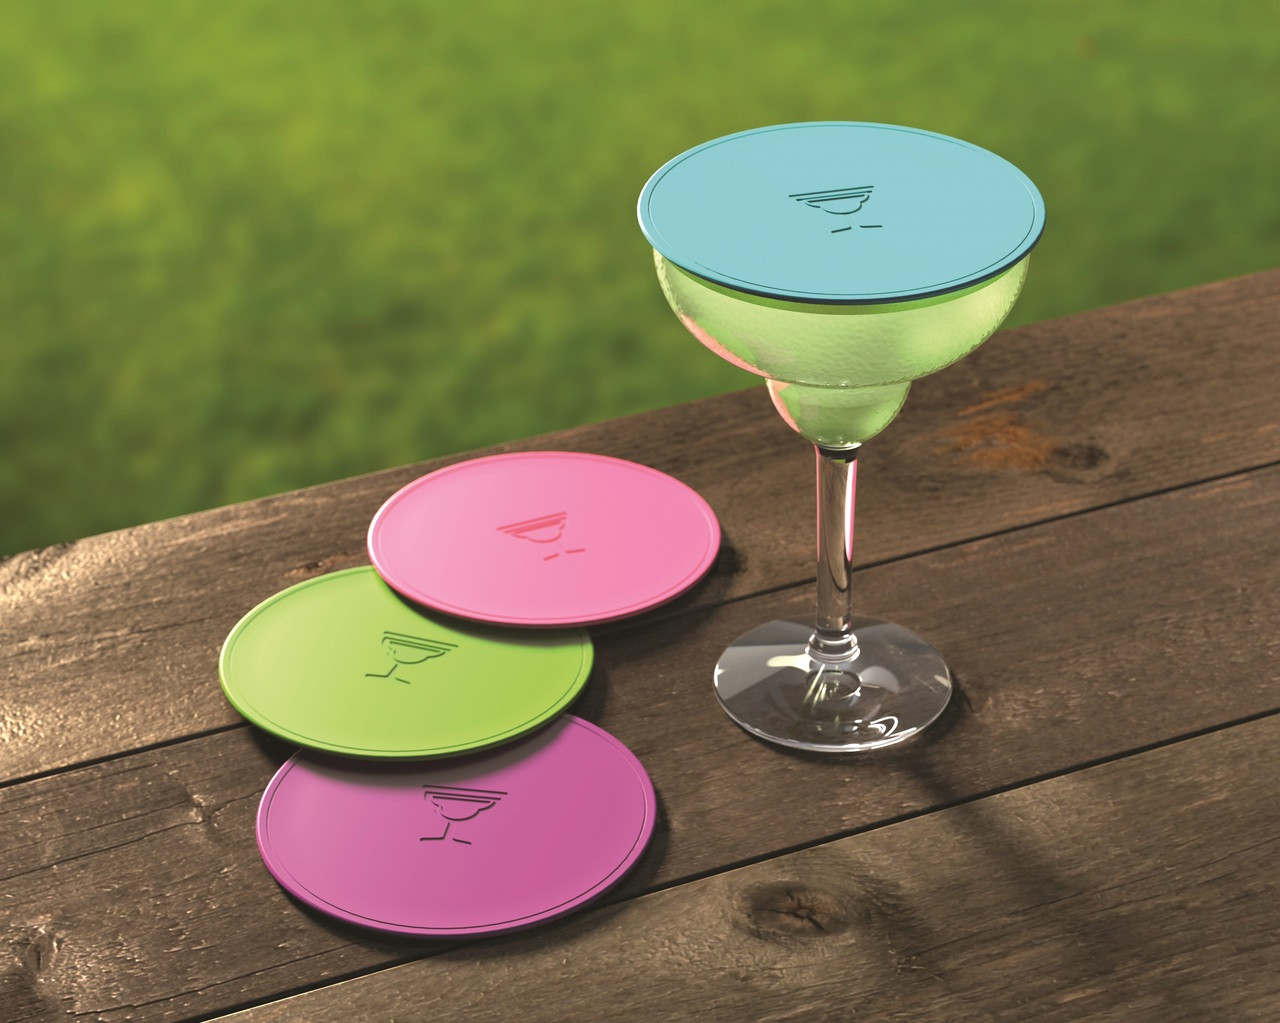 https://d3d71ba2asa5oz.cloudfront.net/23000296/images/drink-tops-mod-outdoor-drink-covers-4-pack-assorted-large-casku17924-4.jpg